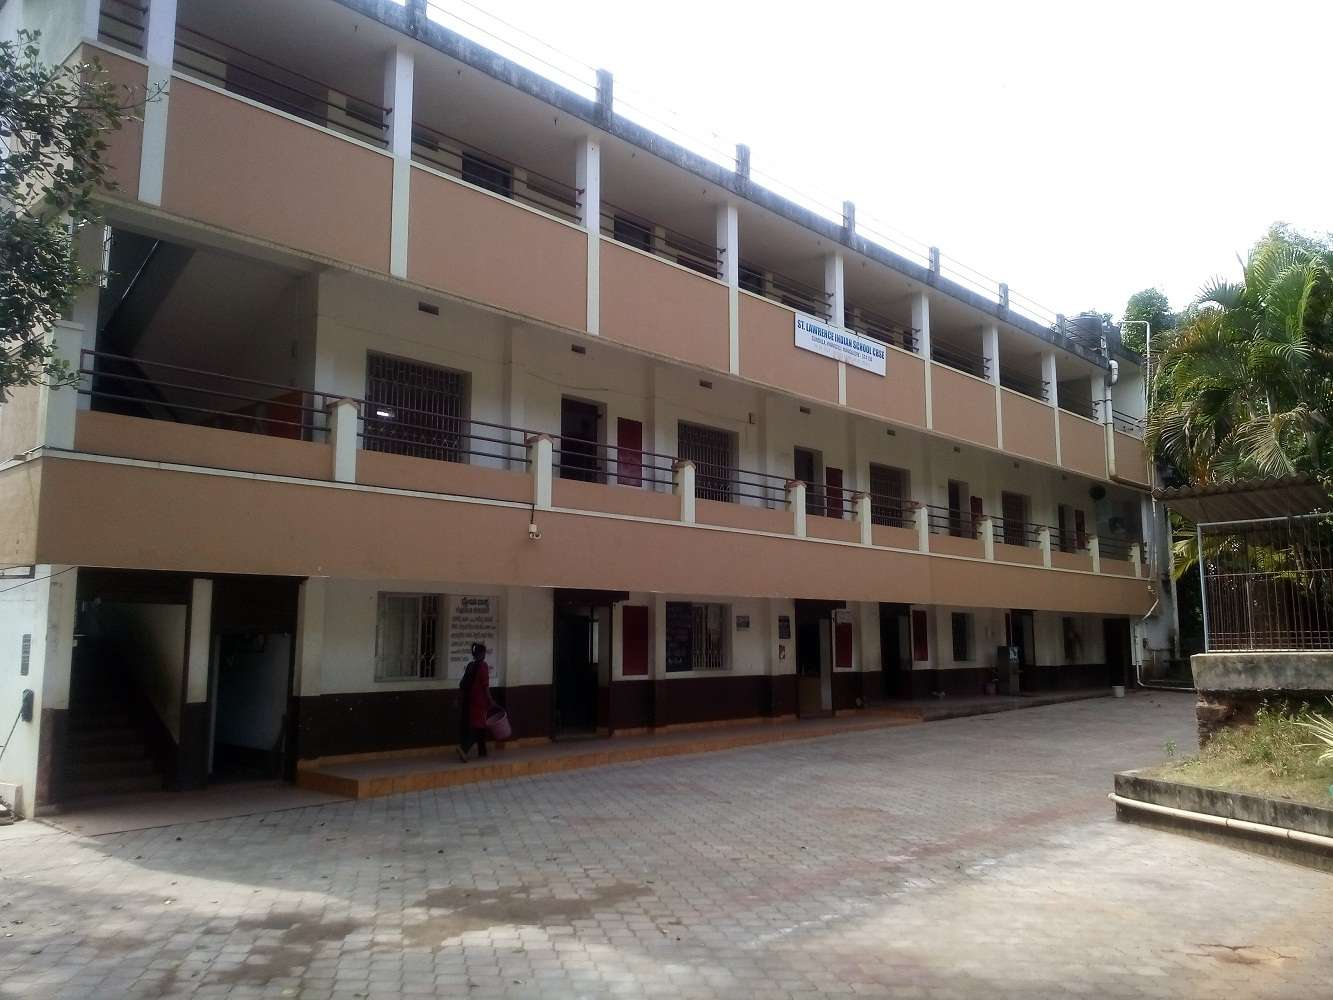 ST LAWRENCE INDIAN SCHOOL GUNDALA KINNIGOLI POST MANGALORE TALUK D K 830361